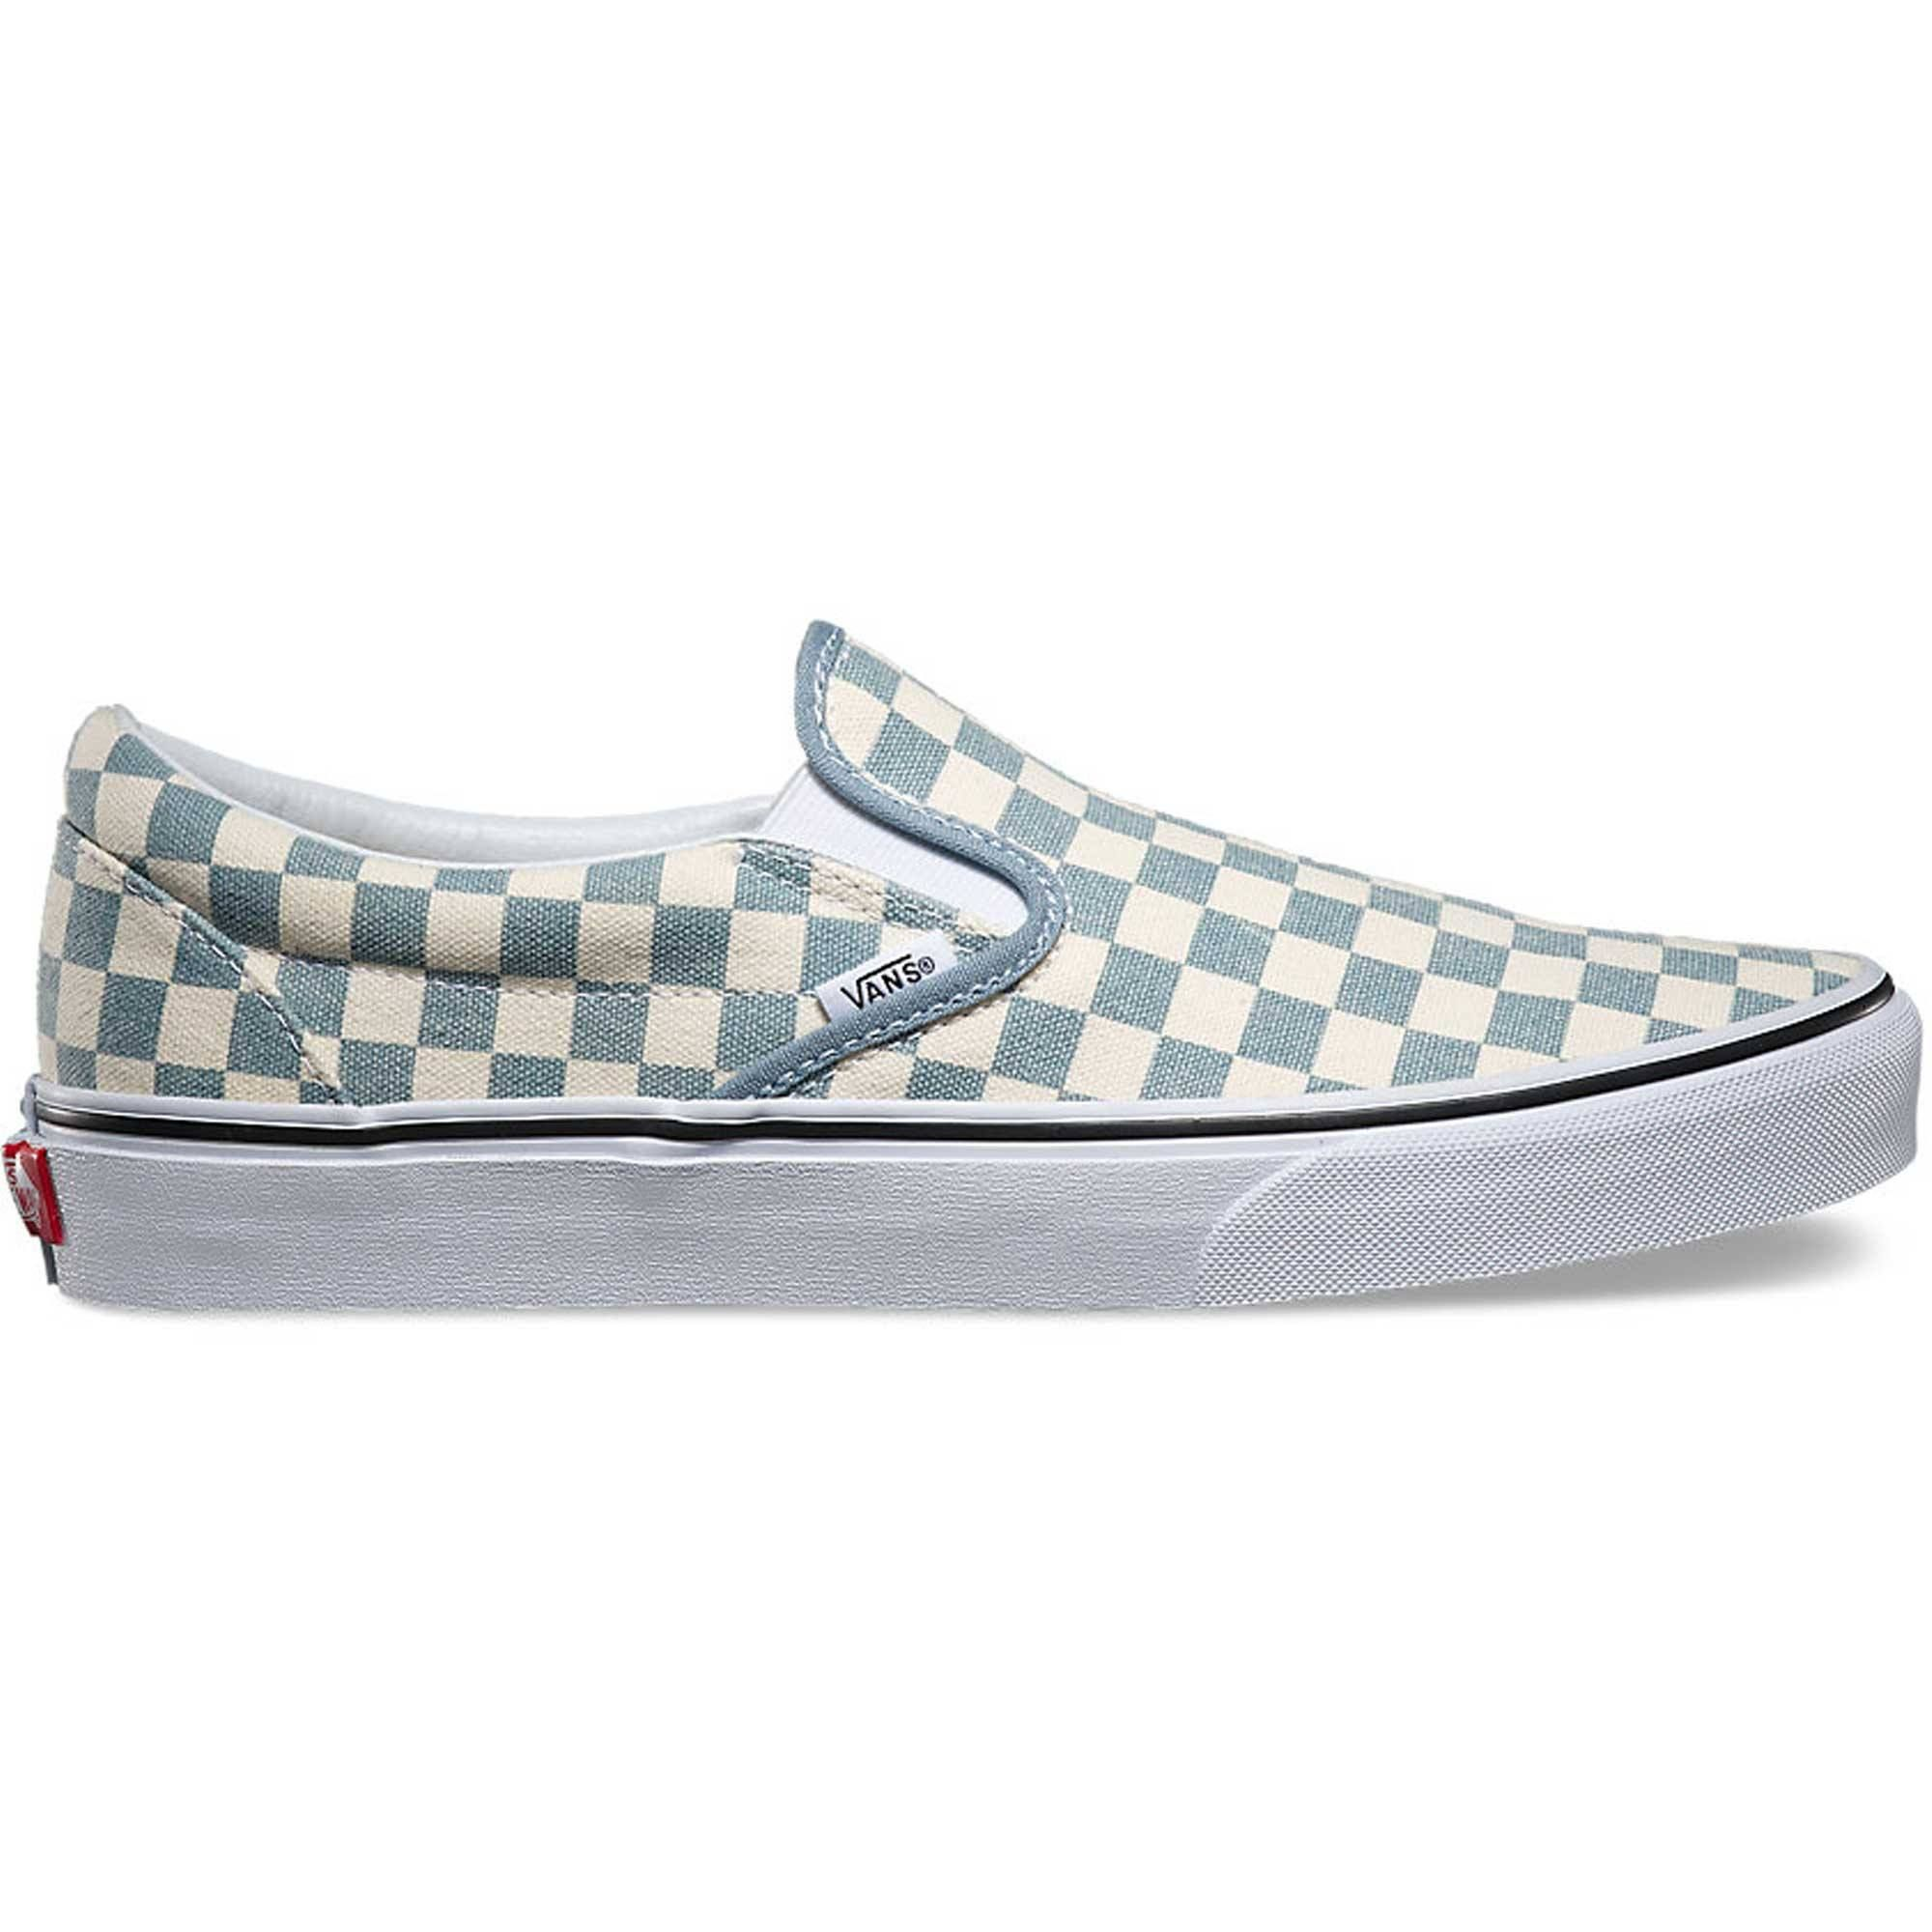 Footwear · VANS Men's Classic Slip-On